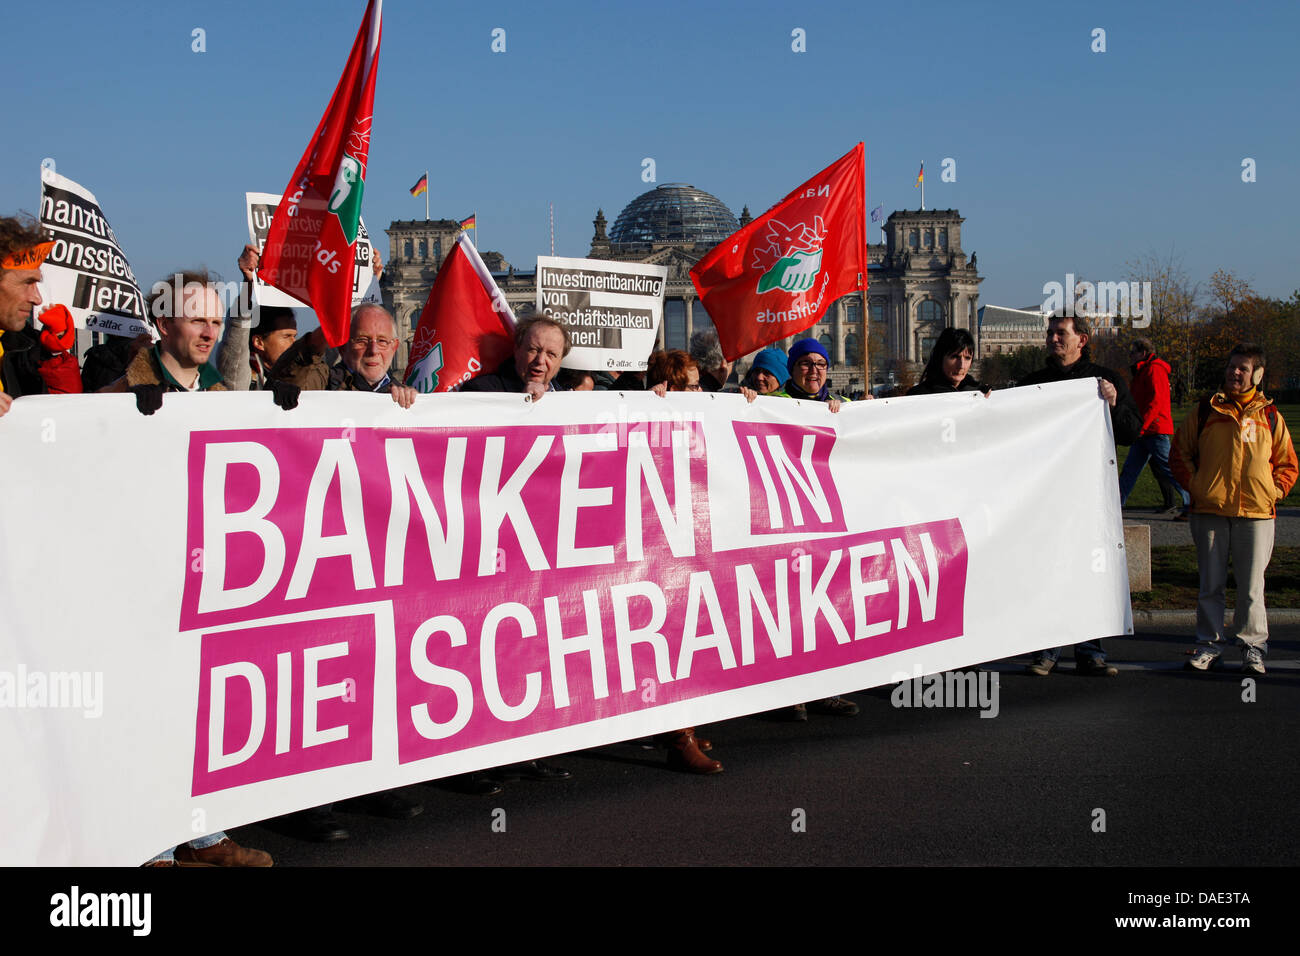 Protesters carry a banner which reads 'Bar the Banks' (Banken in die Schranken) in Berlin, Germany, 12 November Stock Photo